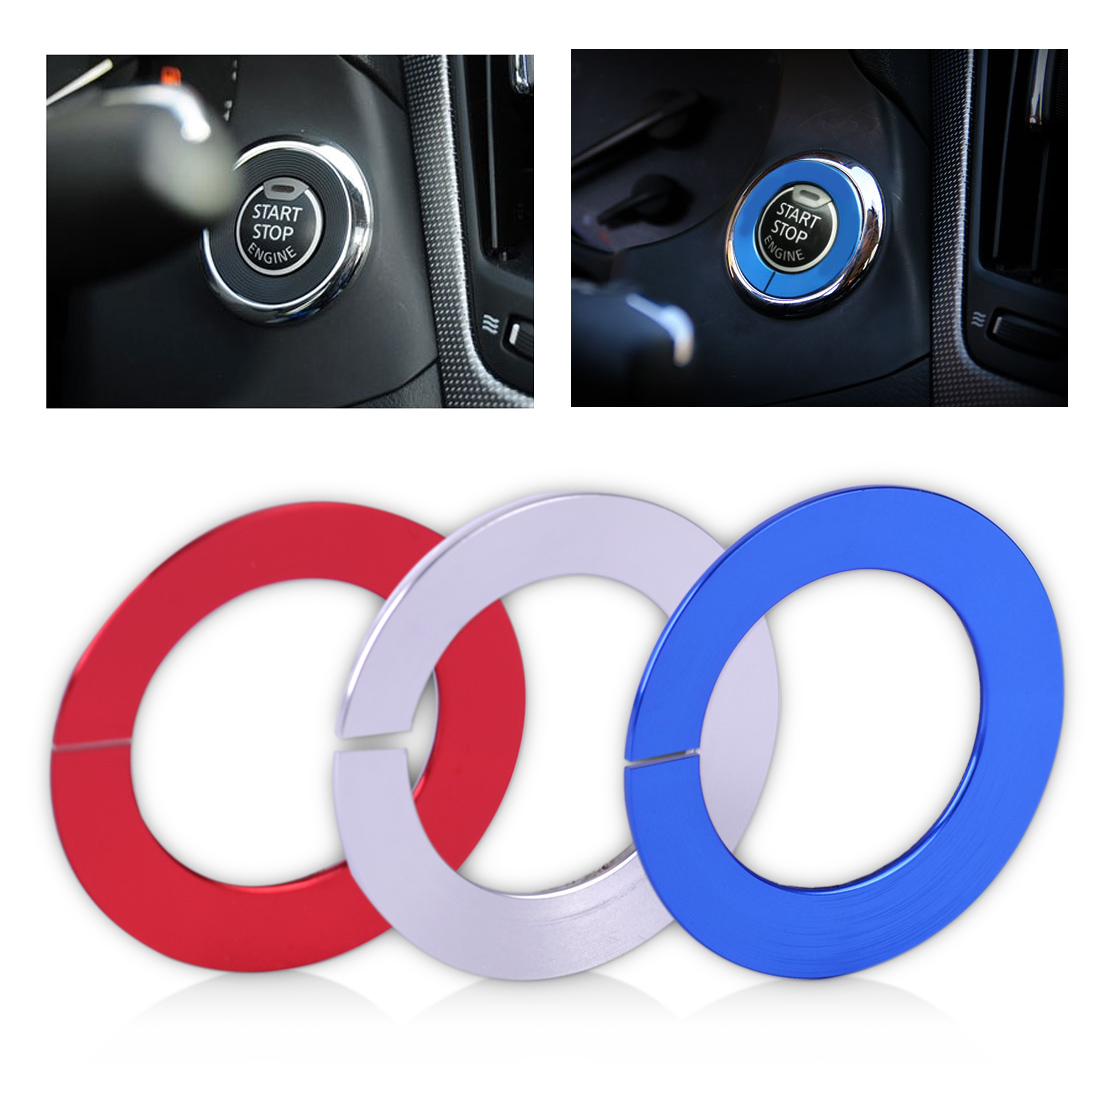 Beler Car Styling Engine Start Stop Switch Push Button